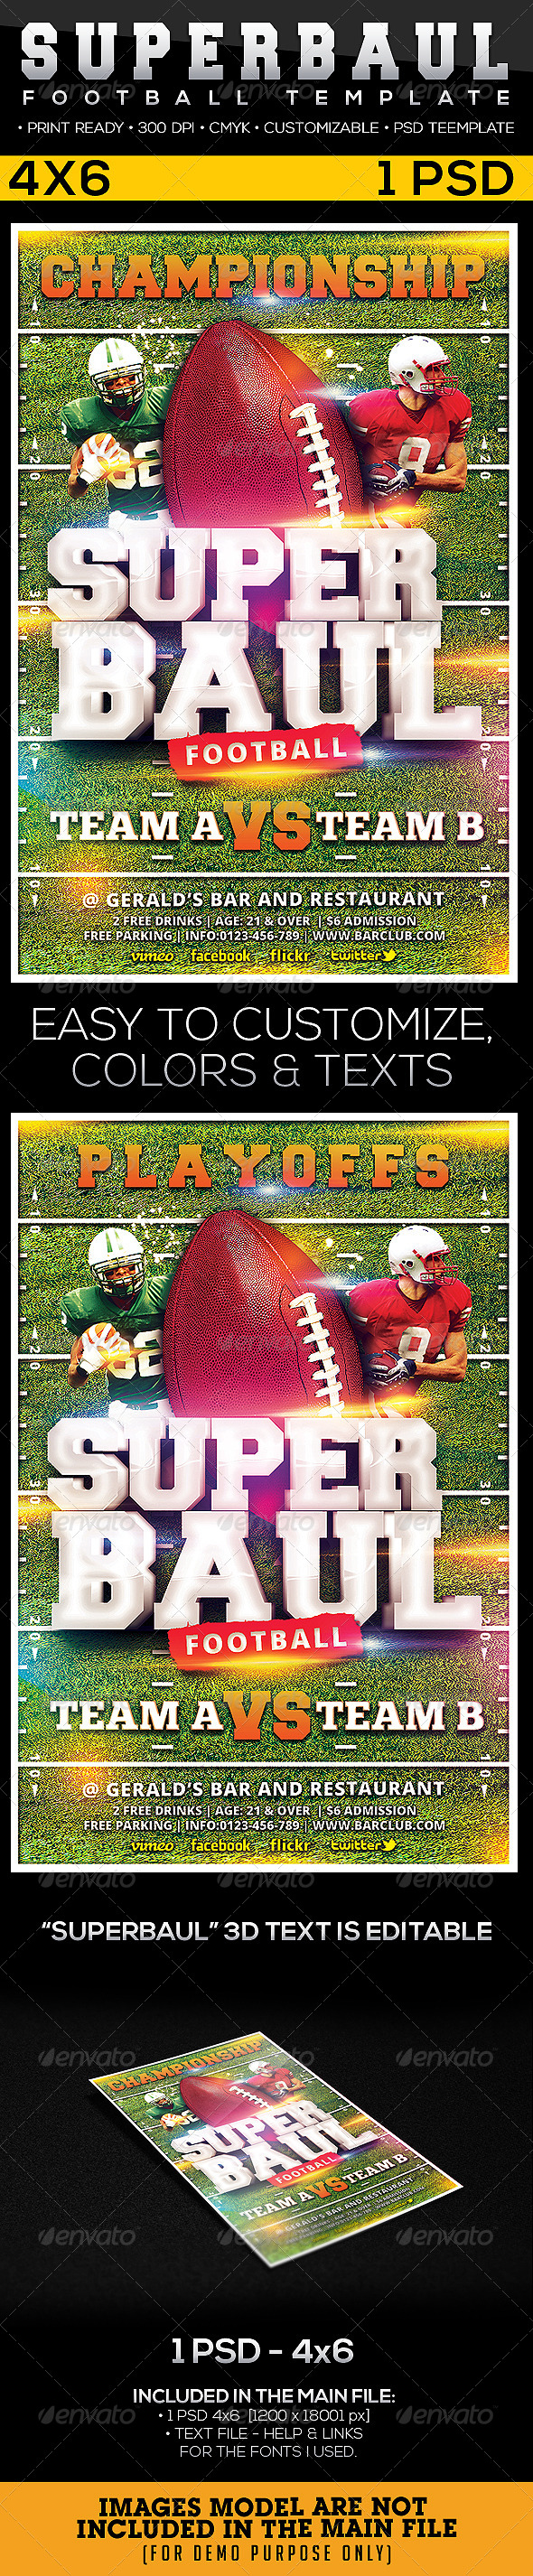 Superboul Football Flyer Template - Sports Events